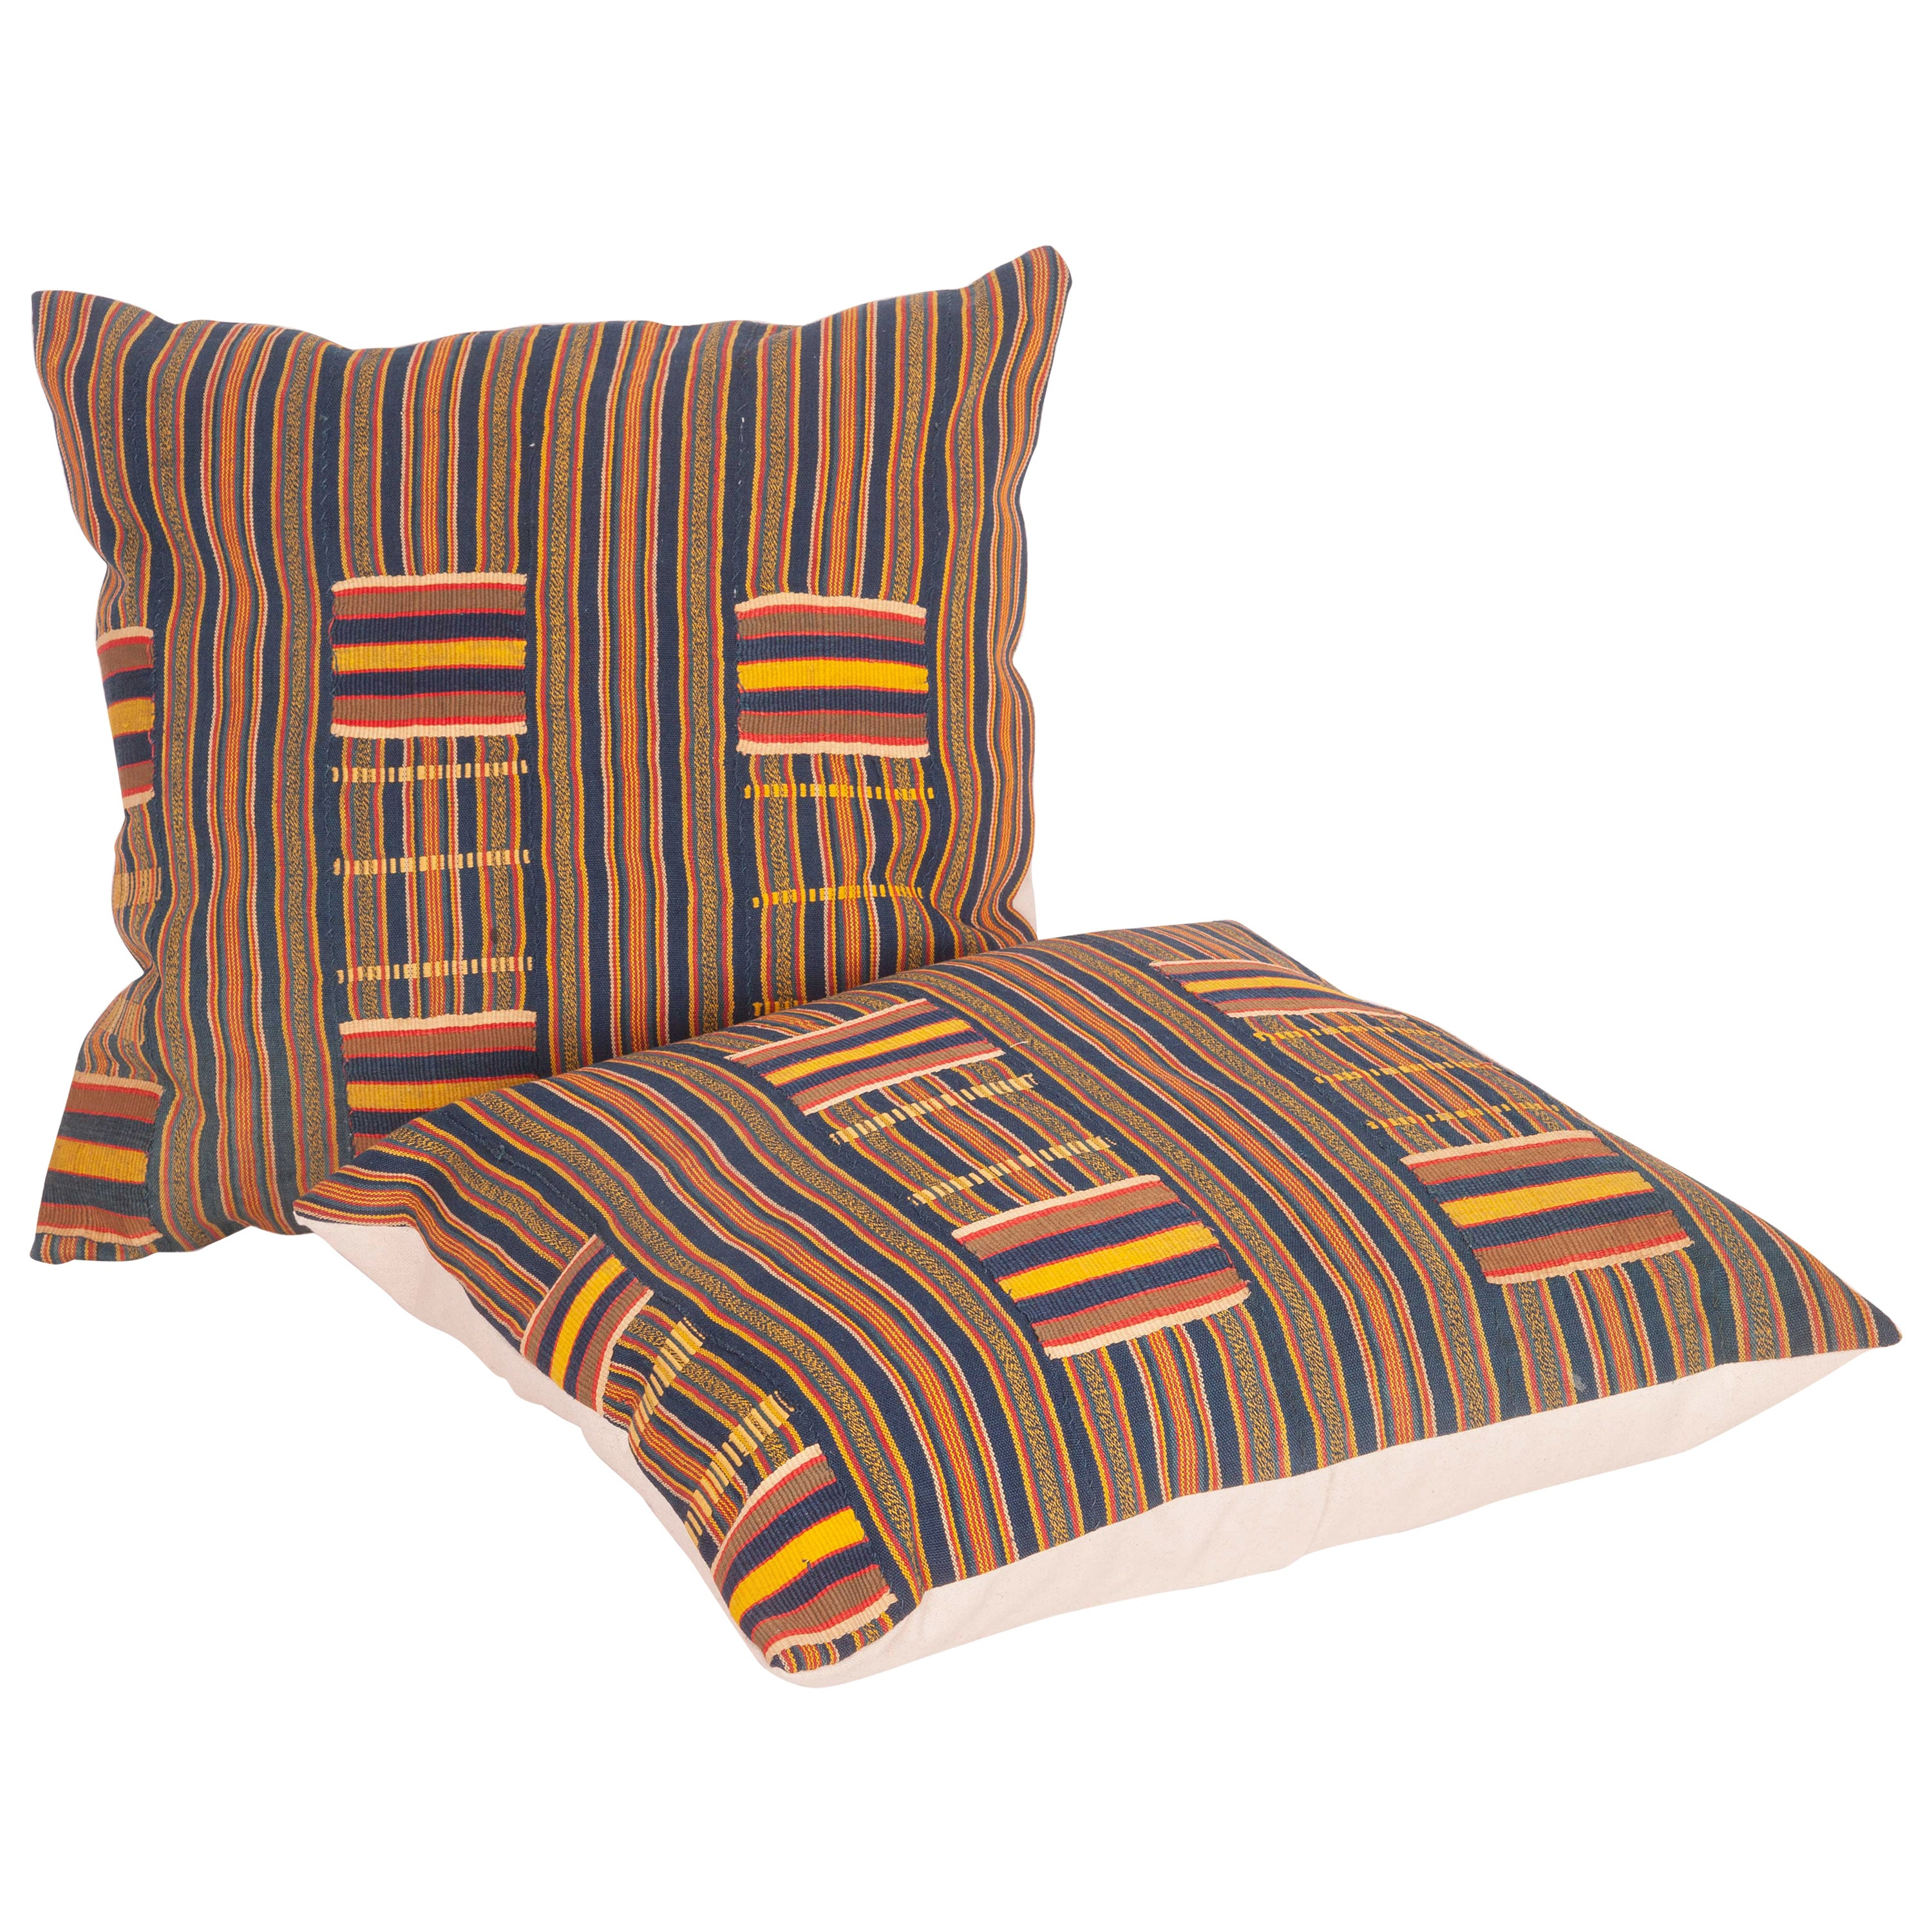 Pillow Cases Fashioned from African Kente Cloth, First Half of the 20th Century